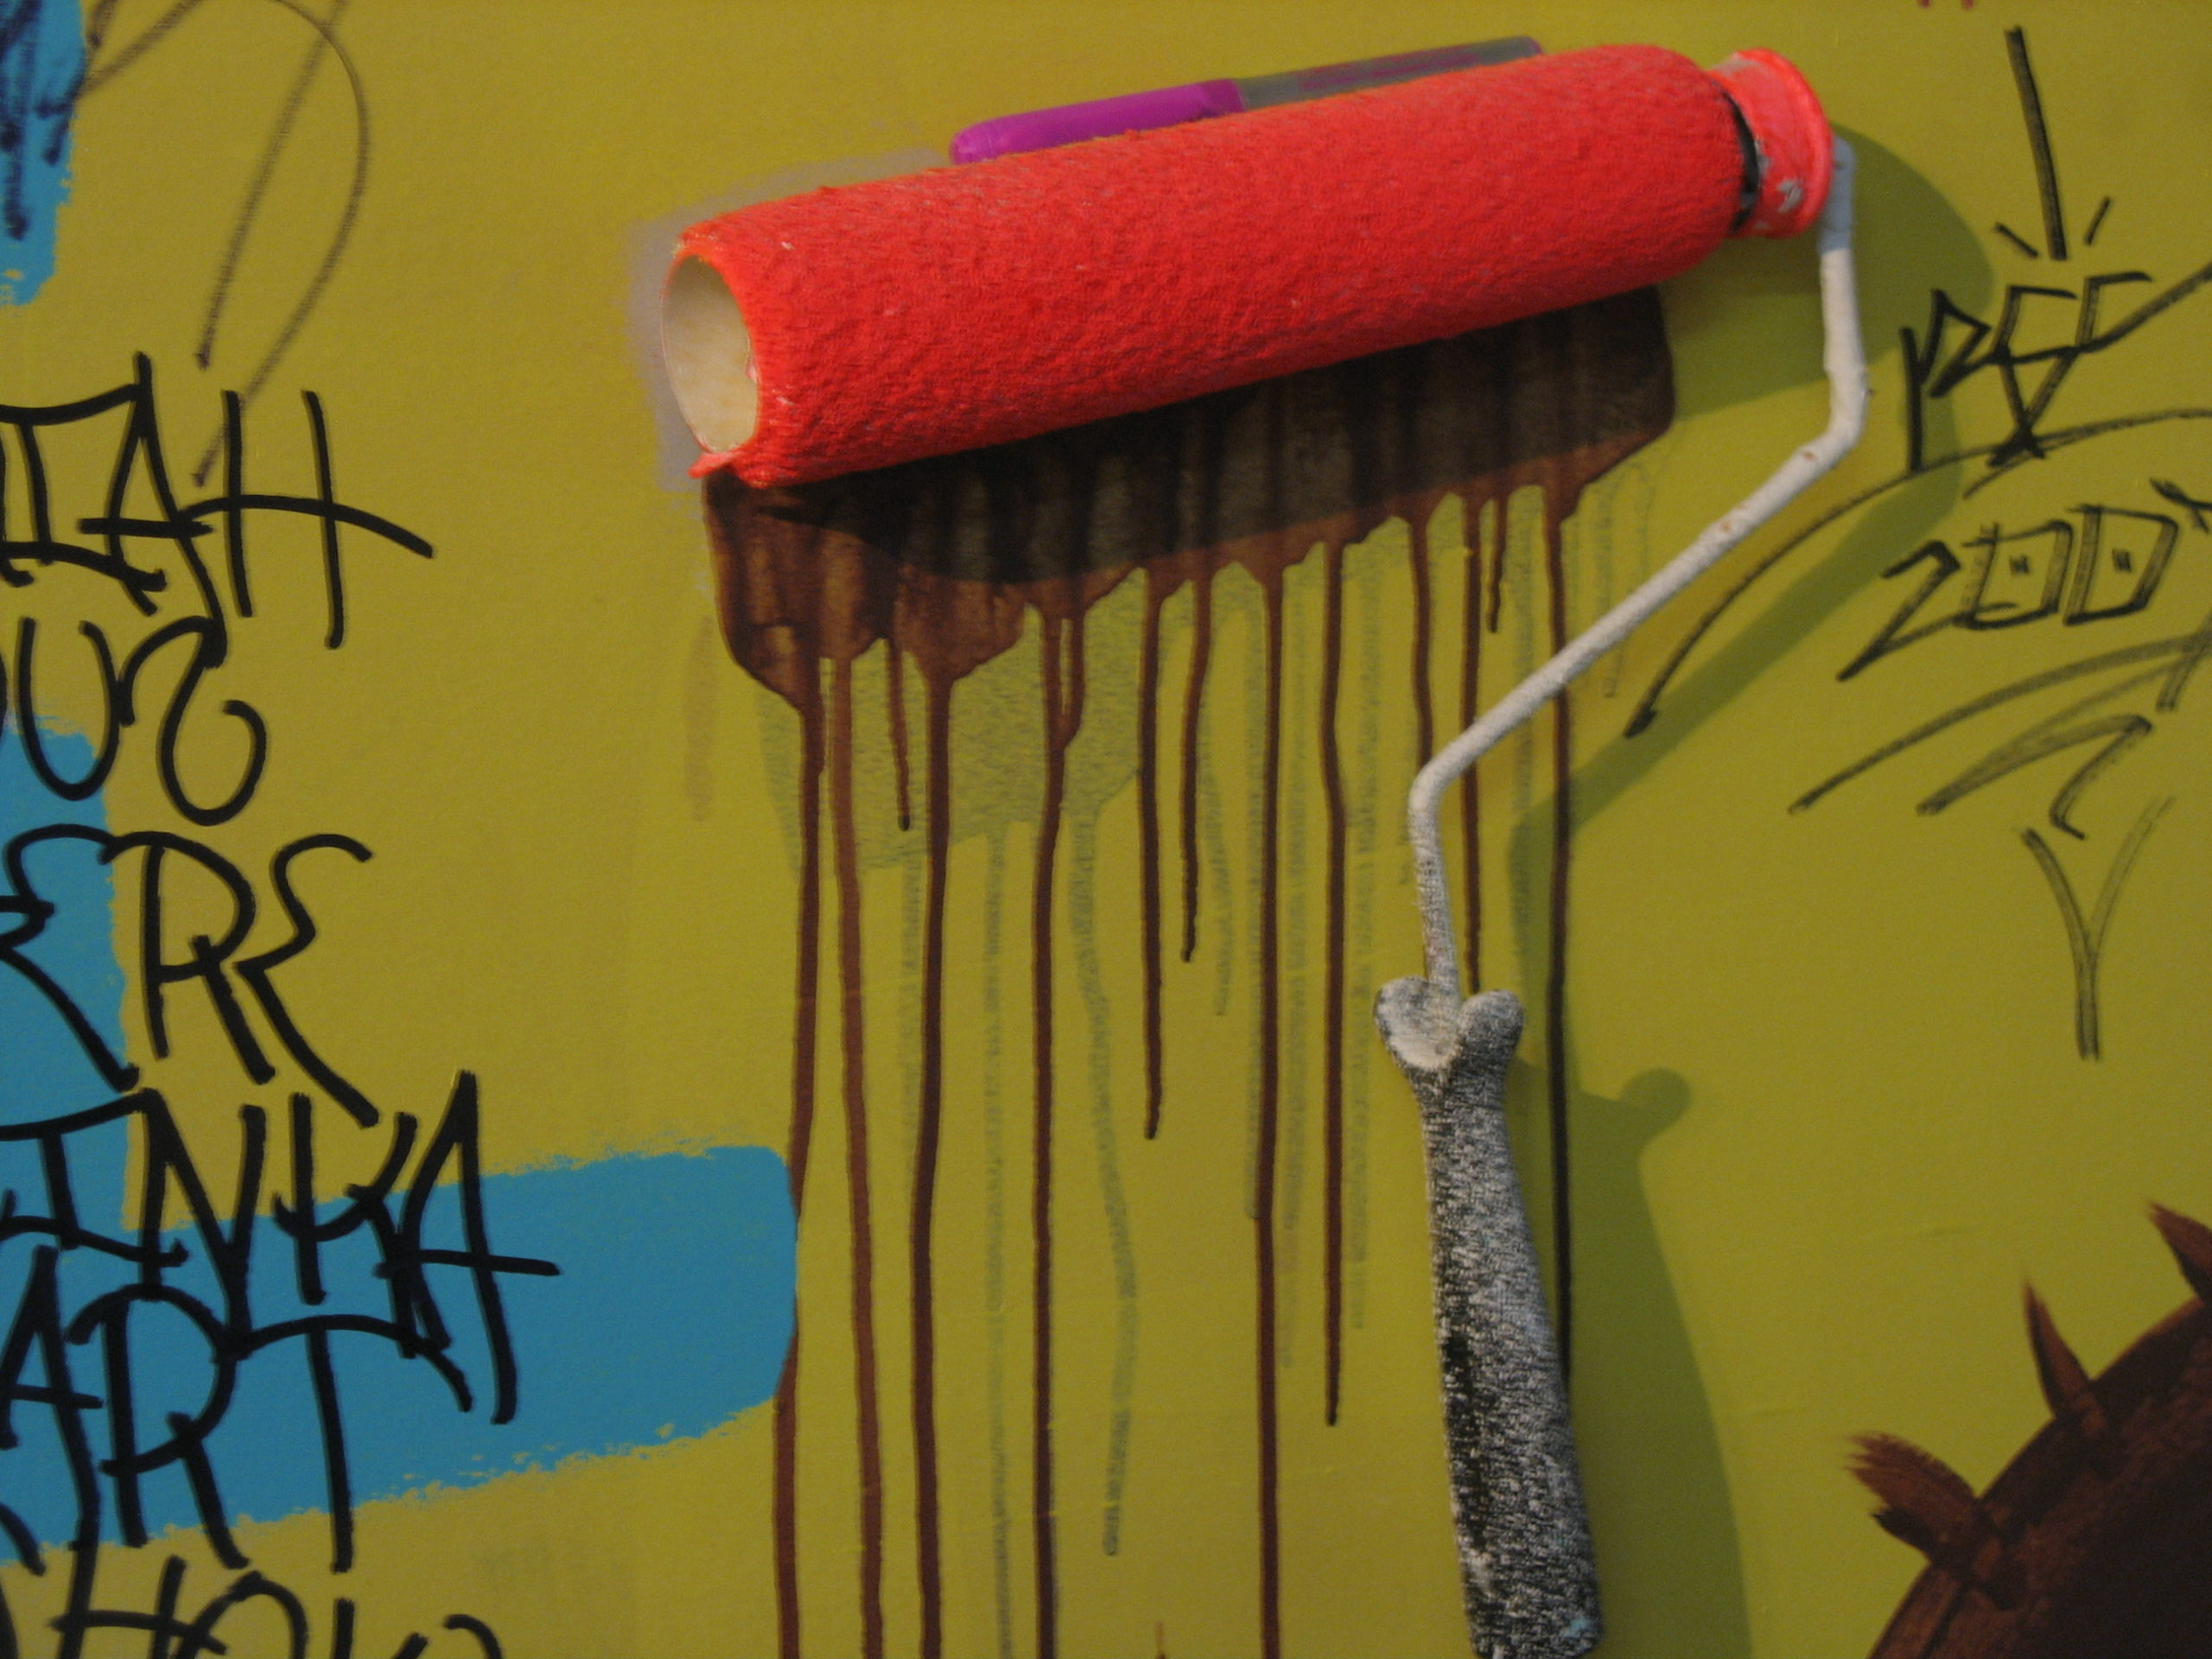 An orange paint roller is pushed against a wall. Paint drips down the wall beneath it.